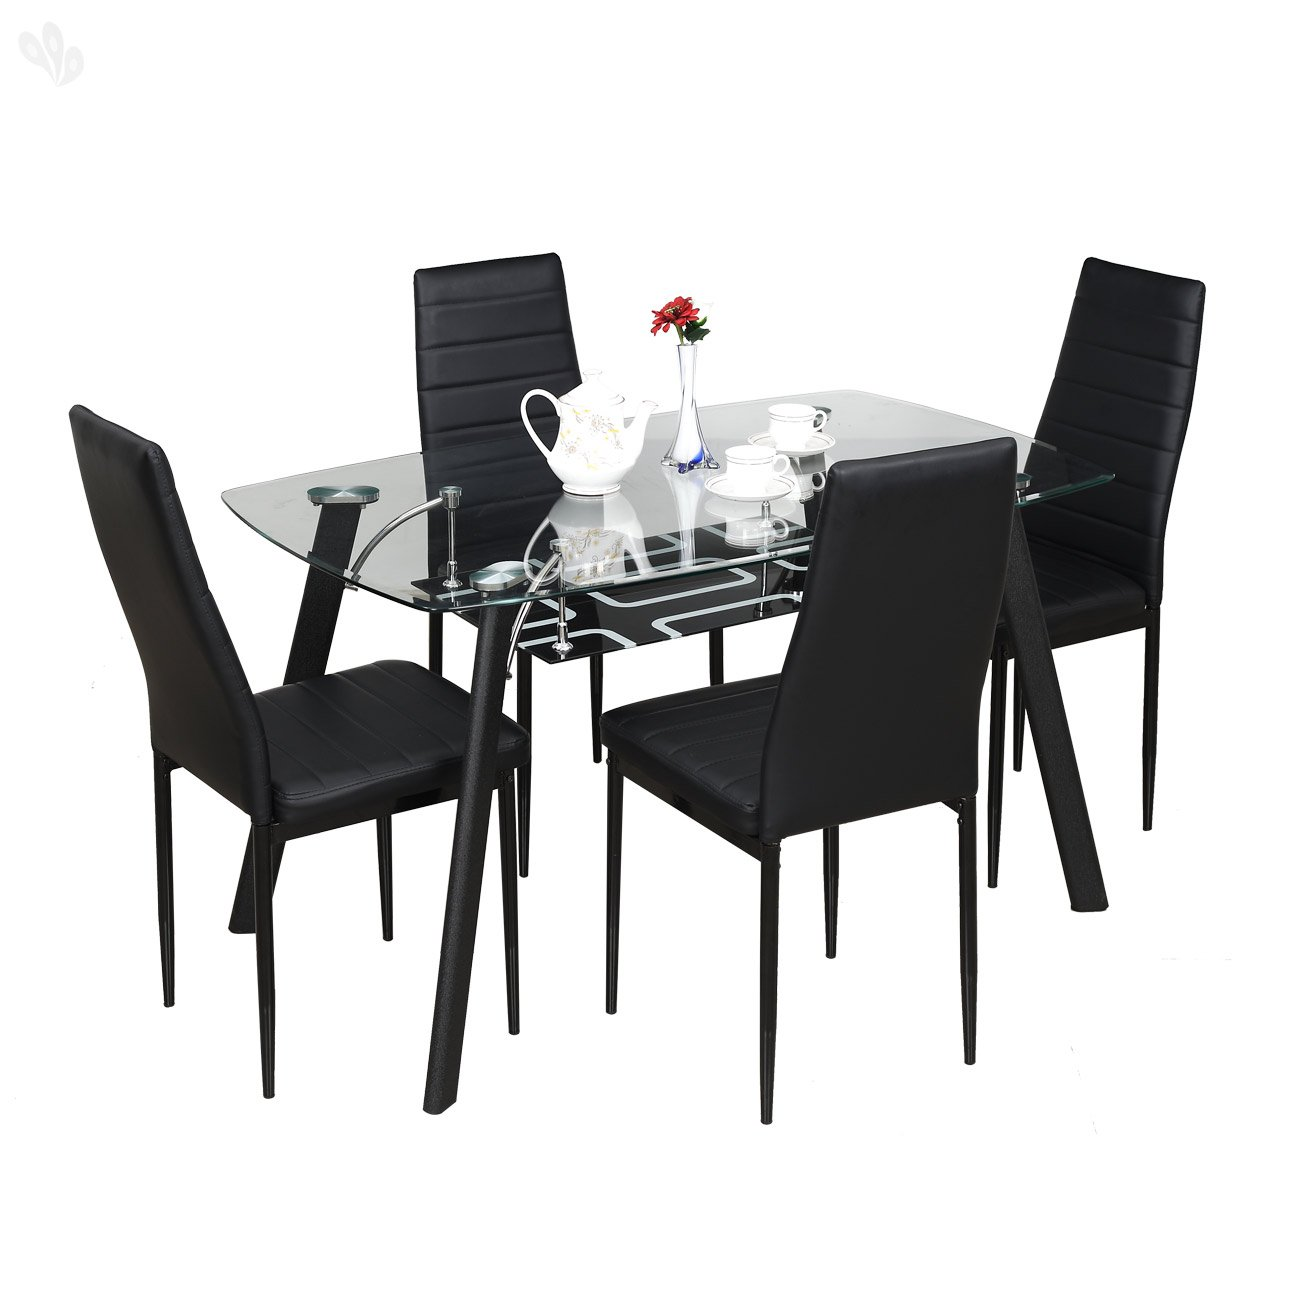 Royal oak milan four seater dining table set black for Dinner table set for 4